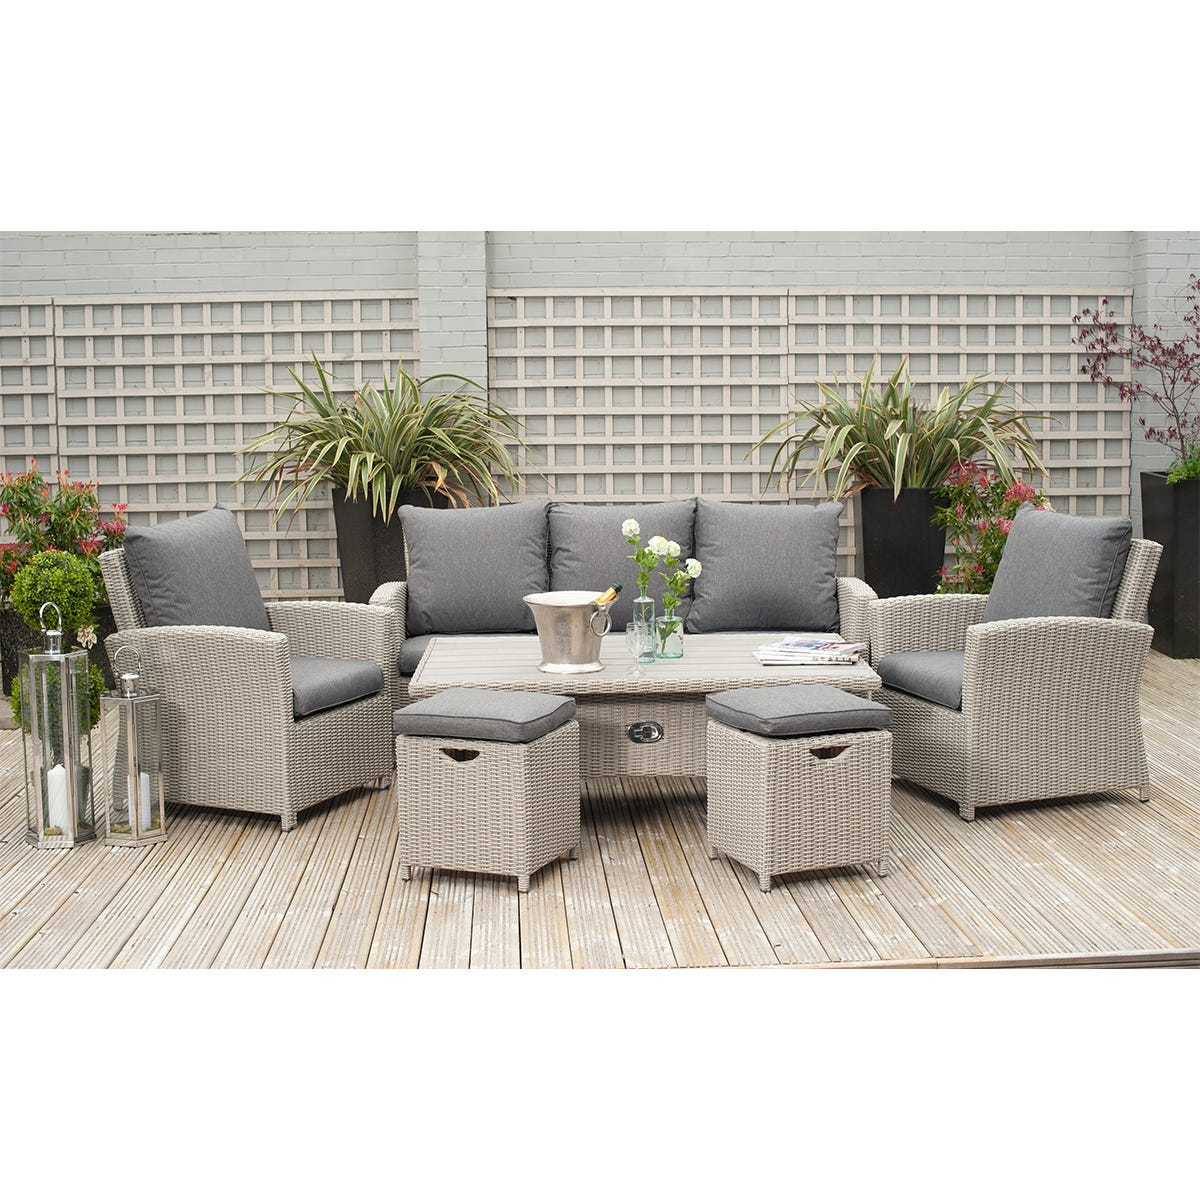 Pacific Lifestyle Barbados 6 Piece Relaxed Dining Set with Adjustable Table - Stone Grey